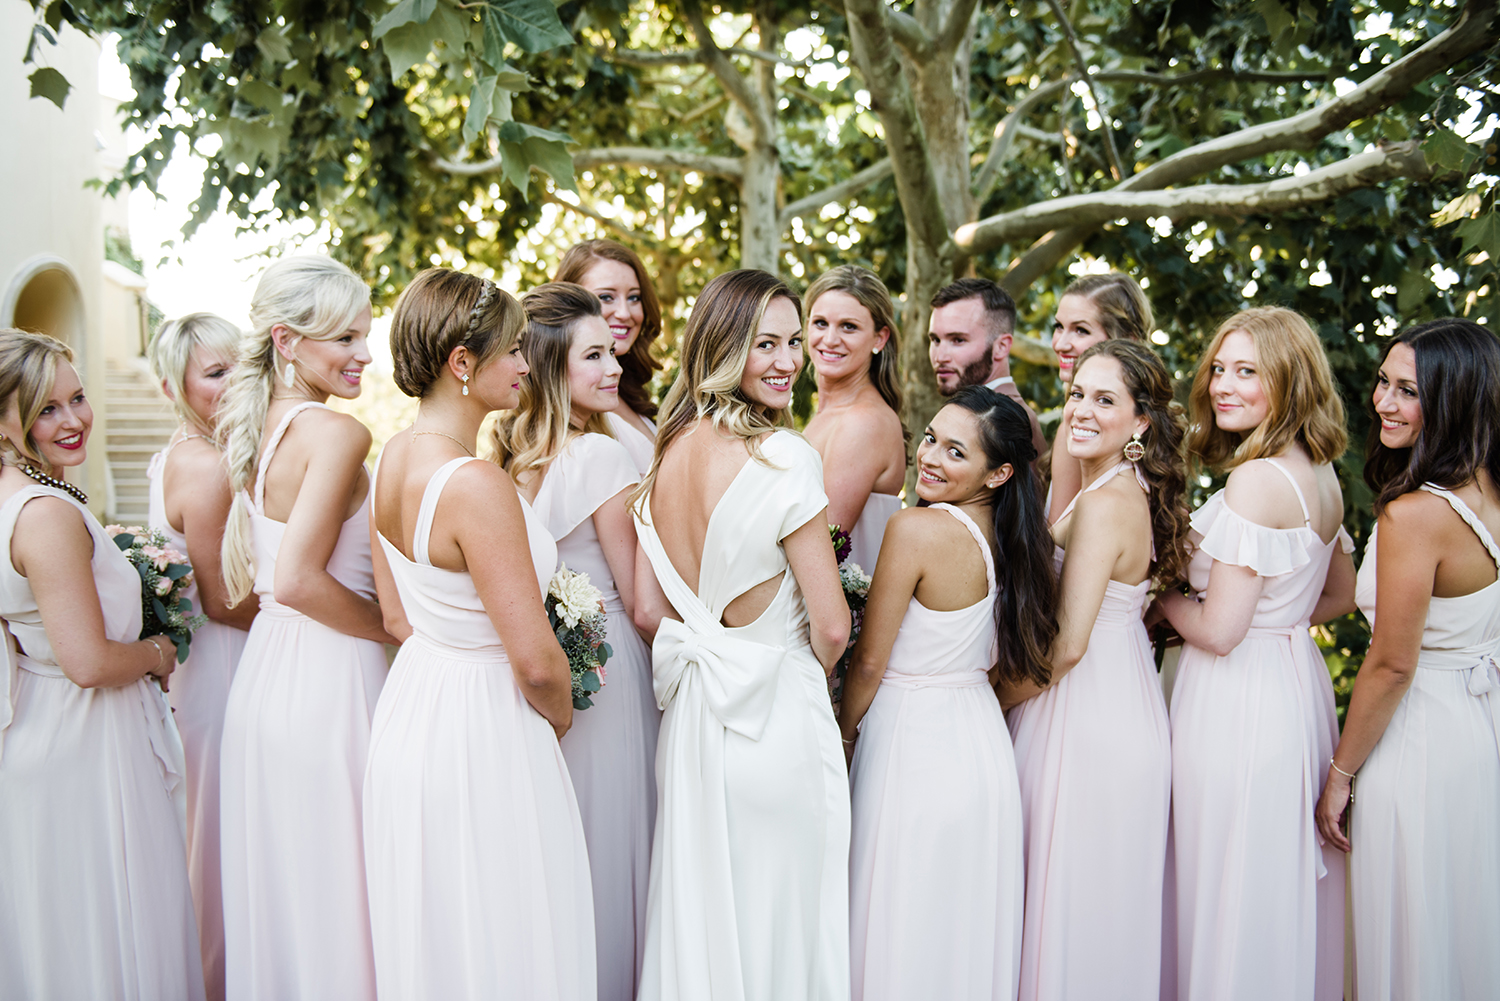 livvyland-blog-olivia-watson-wedding-villa-del-lago-austin-texas-fall-blush-burgundy-classic-romantic-joanna-august-bridesmaid-dresses-1